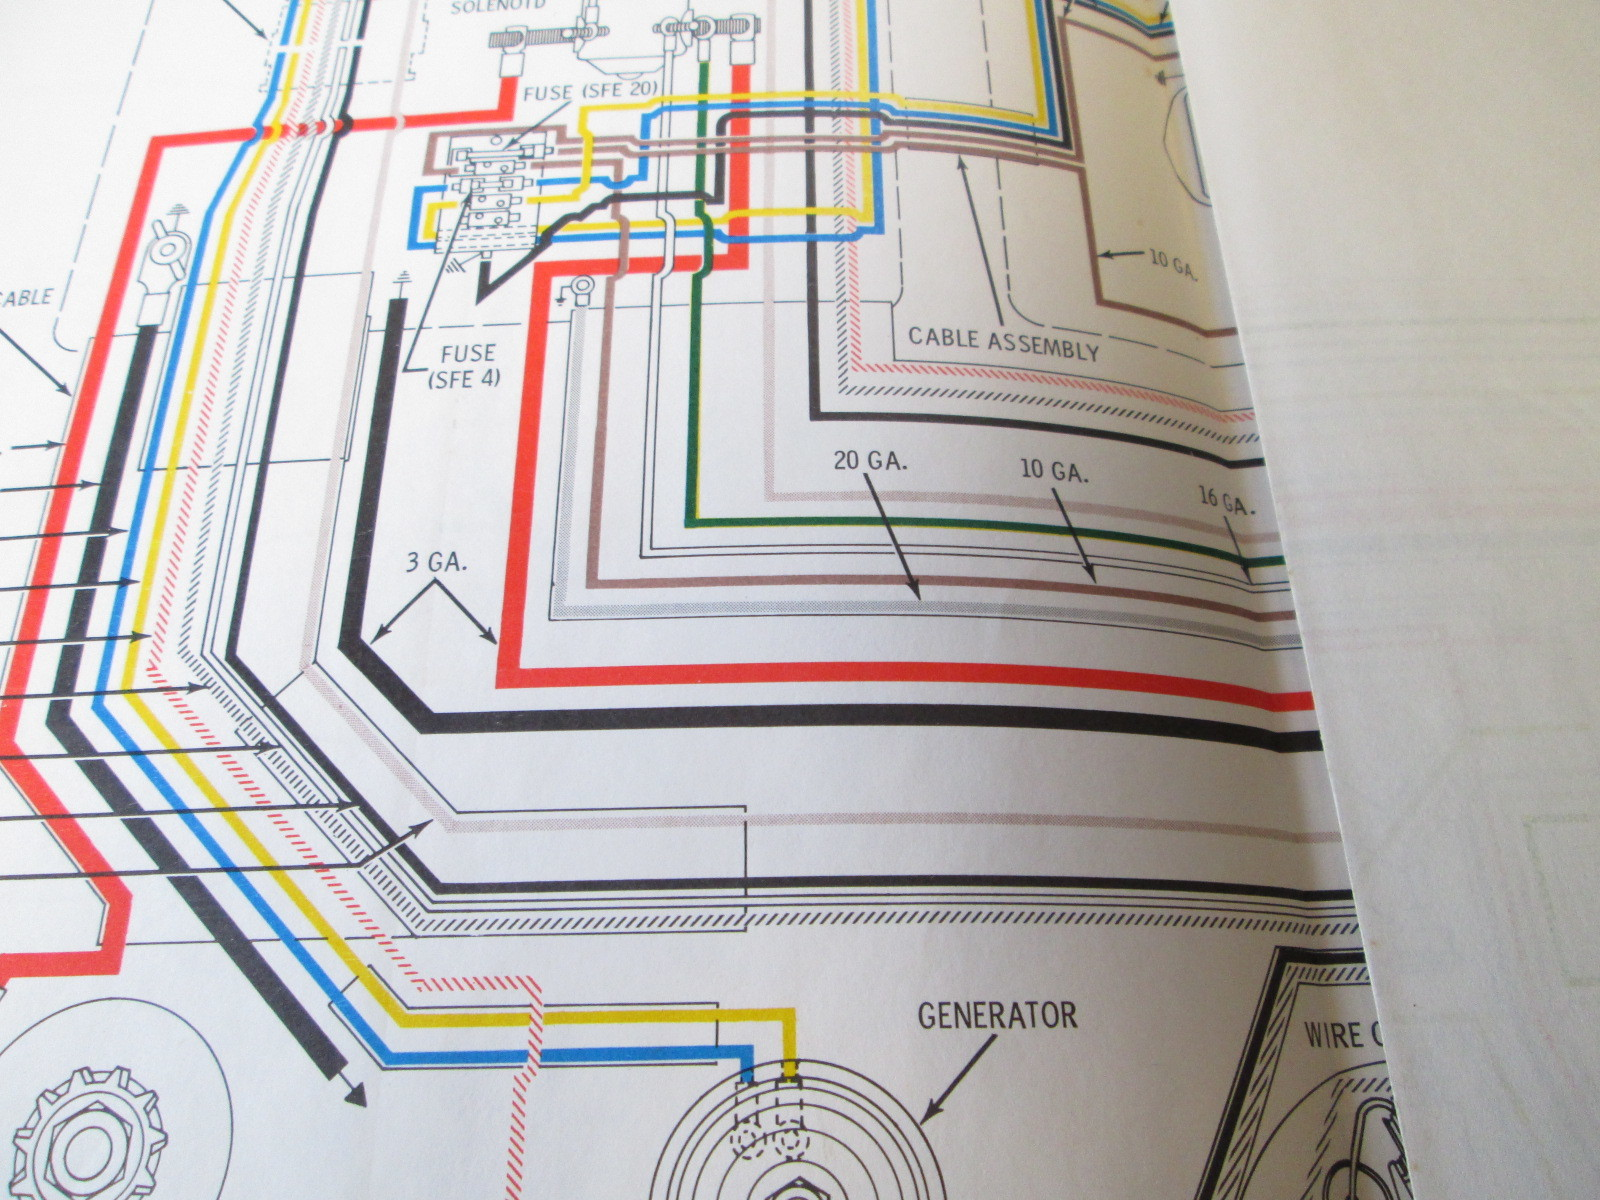 Wiring Diagram 1965 50 Hp Johnson Outboard - Information Of Wiring ...